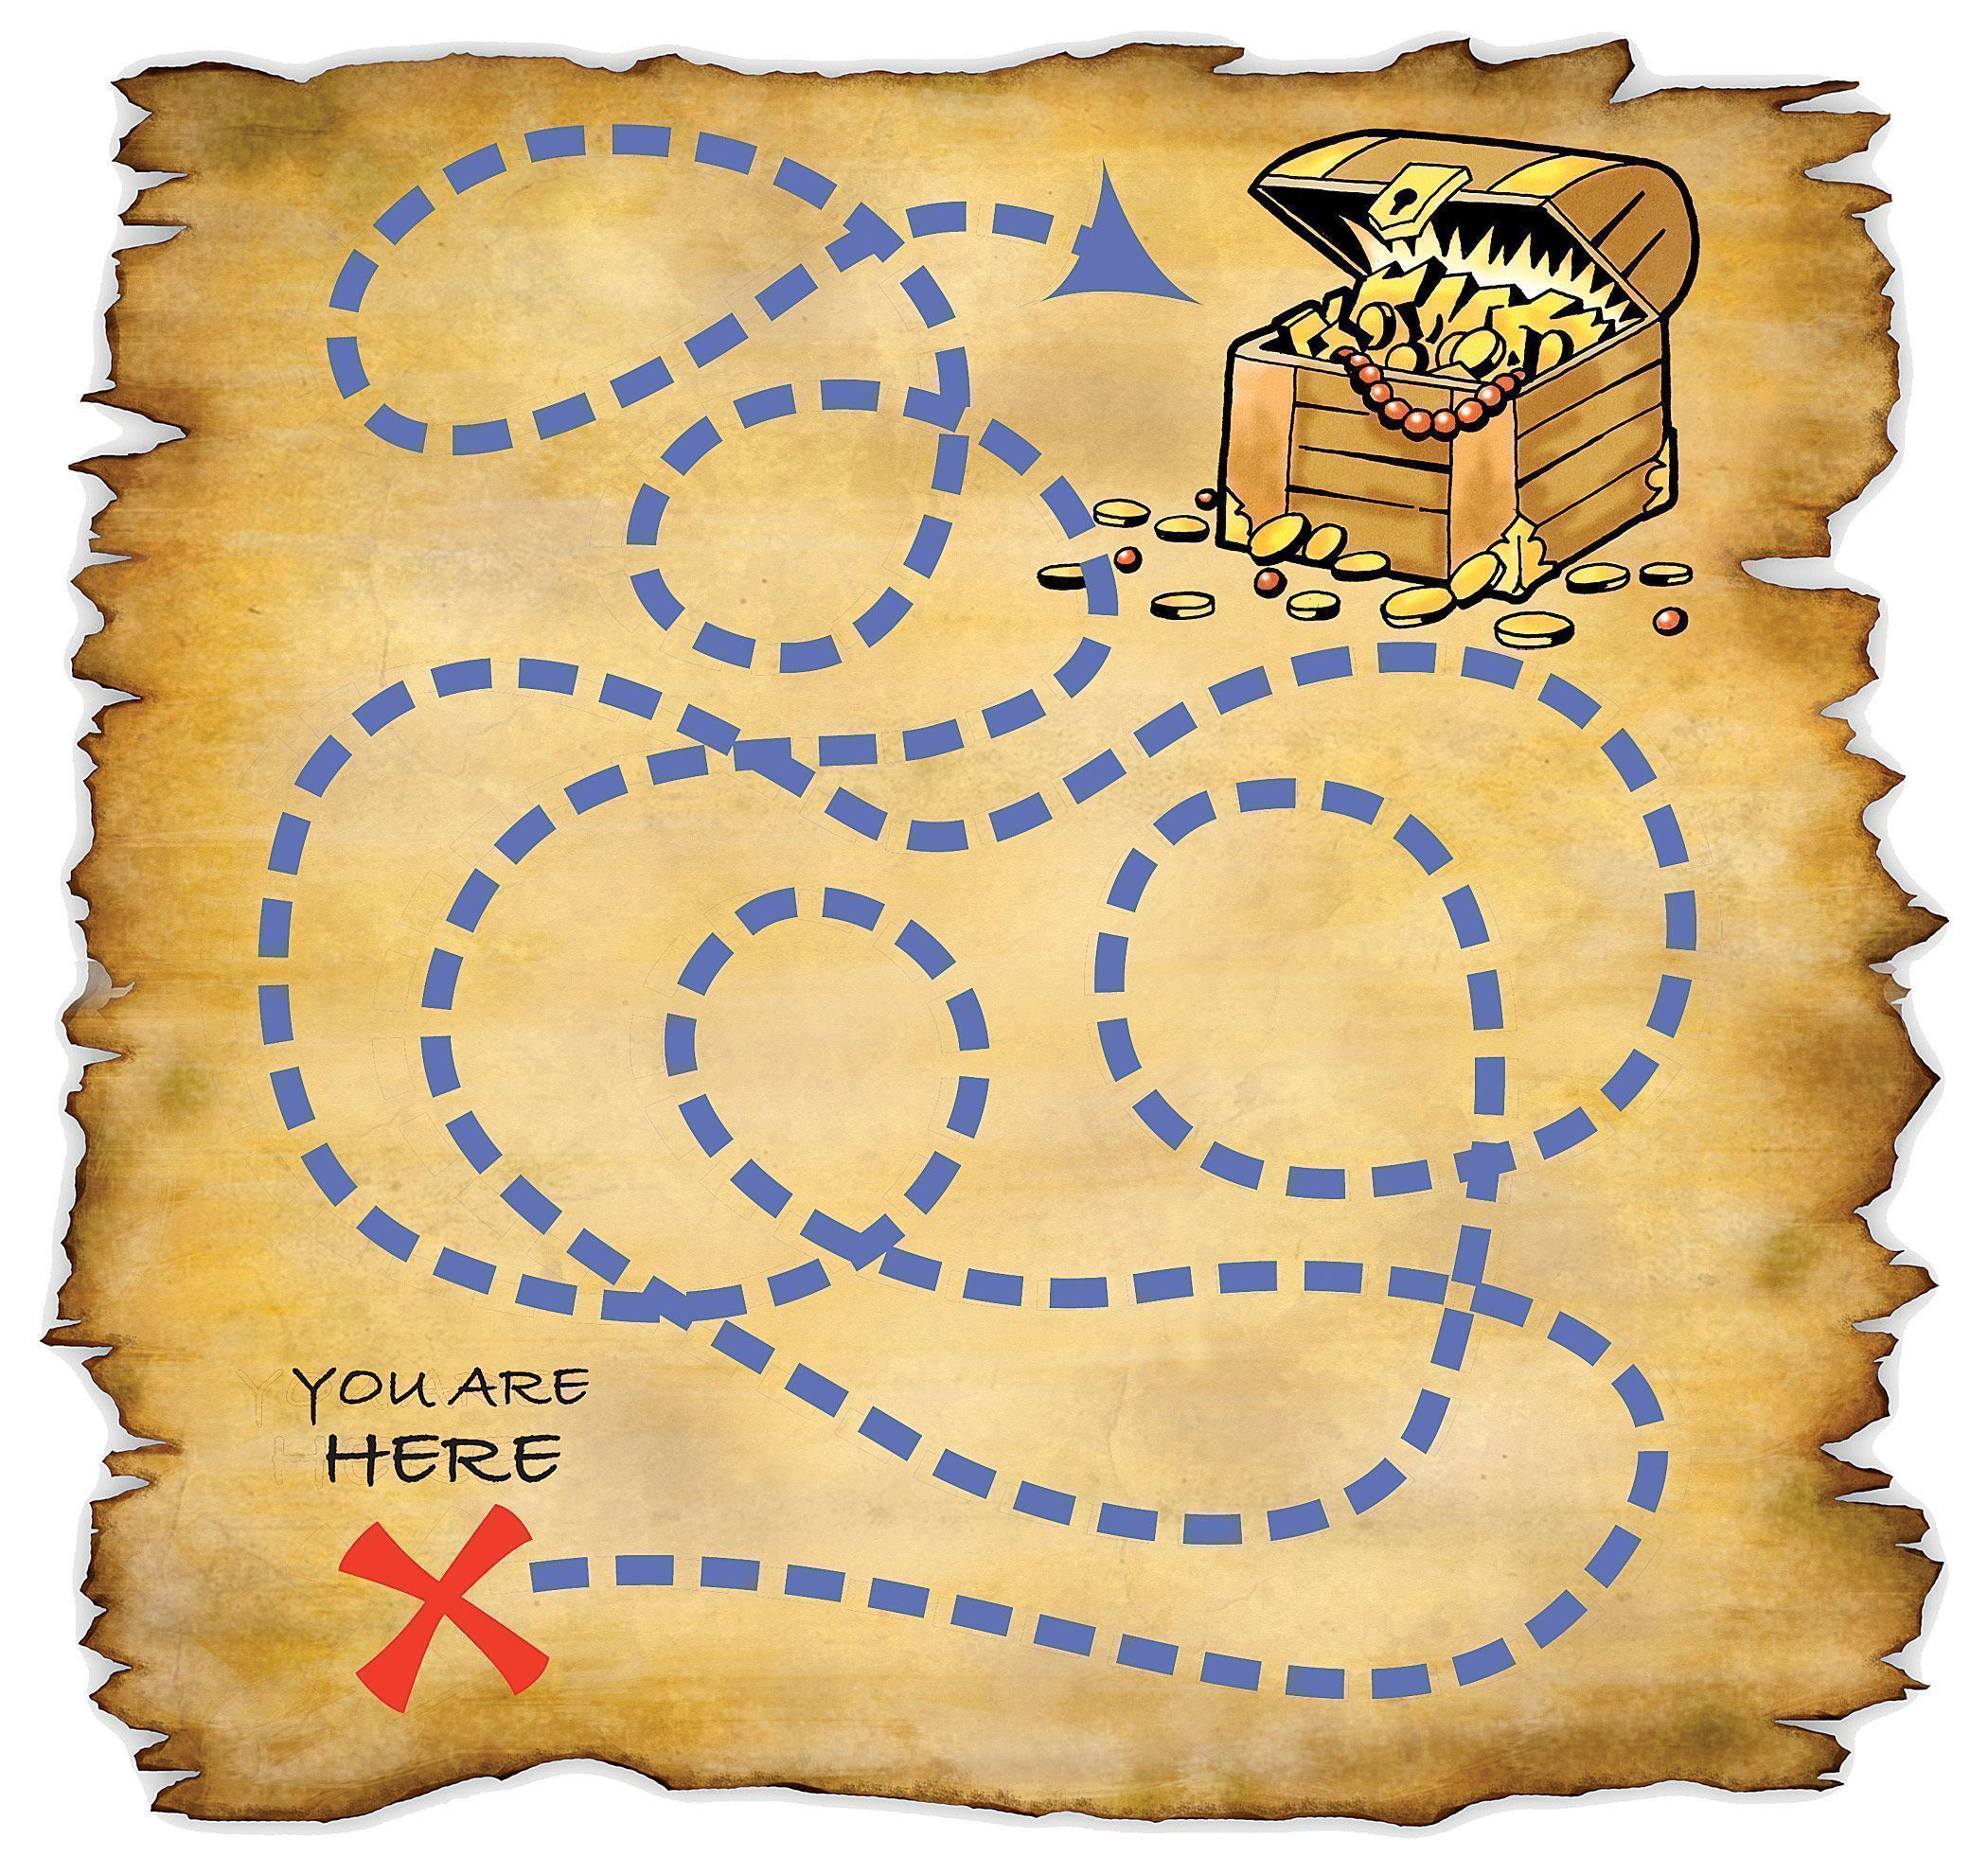 Treasure Map Word Template 05910 Pictures to pin on Pinterest